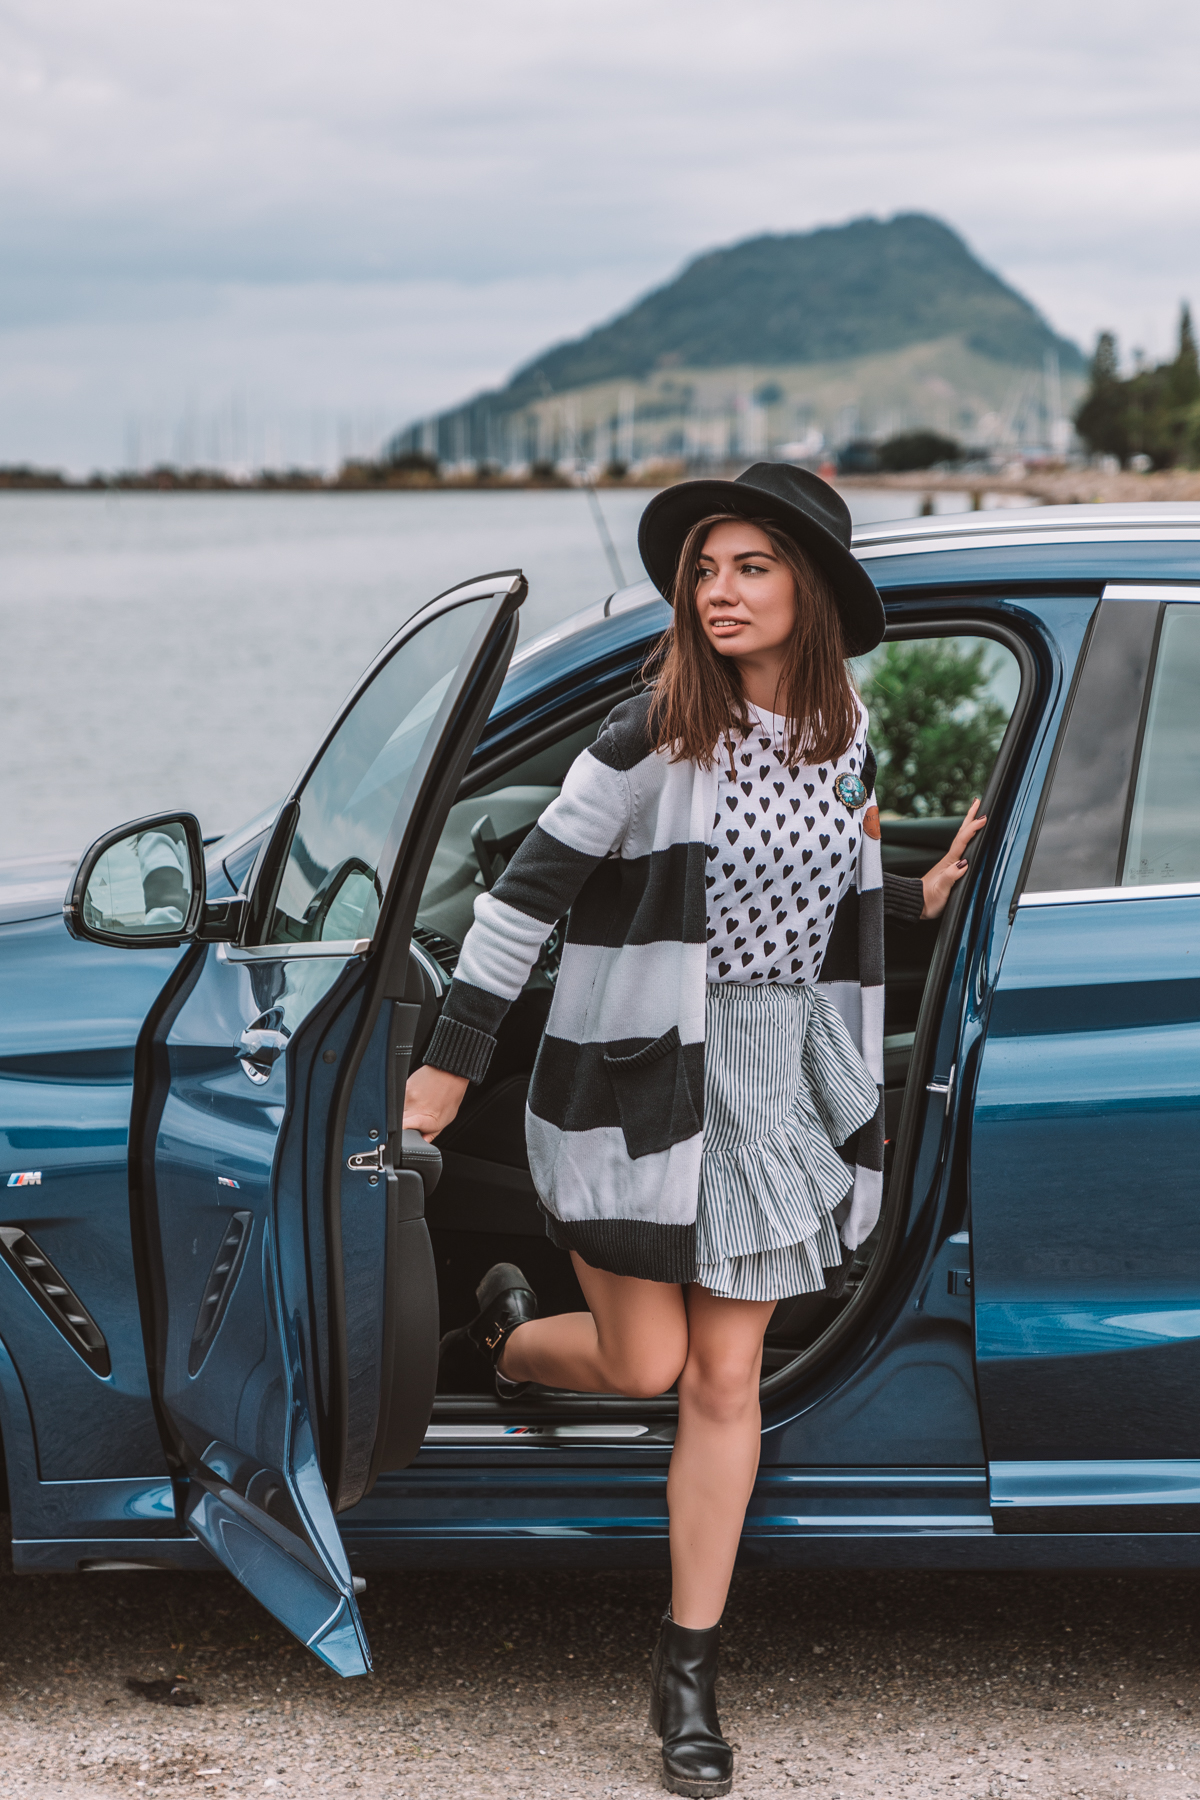 thestylejungle-New-Zealand-BMW-X4-Tauranga-test-drive